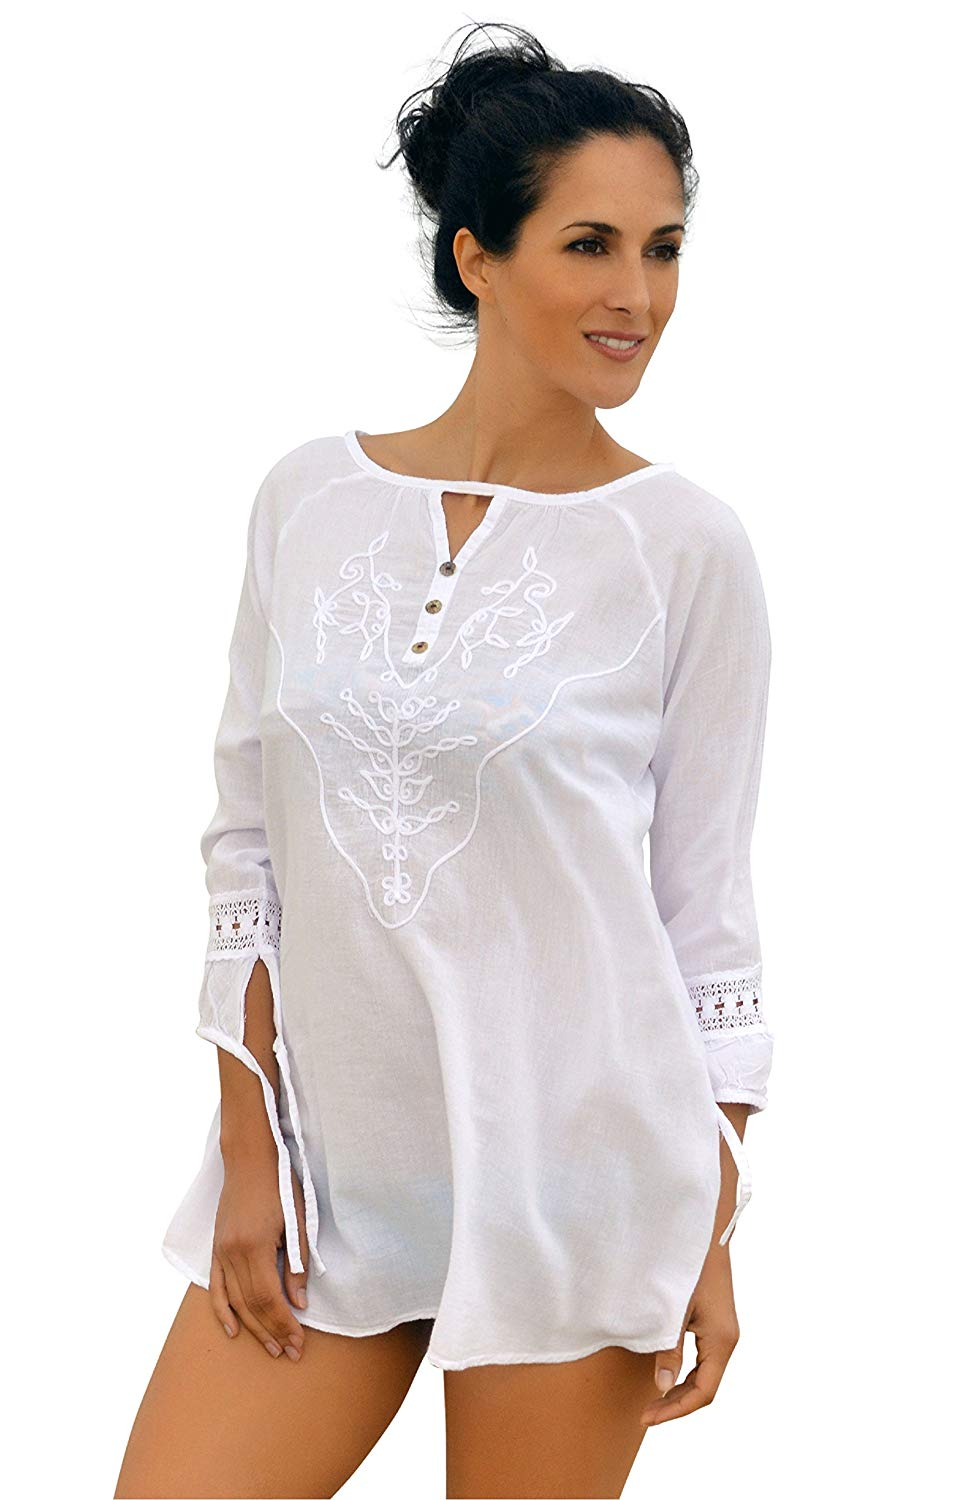 58f50423f7 Get Quotations · Cotton Natural Beach Cover Up Embroidered Fashion Summer  Swim Tunic Cover Up